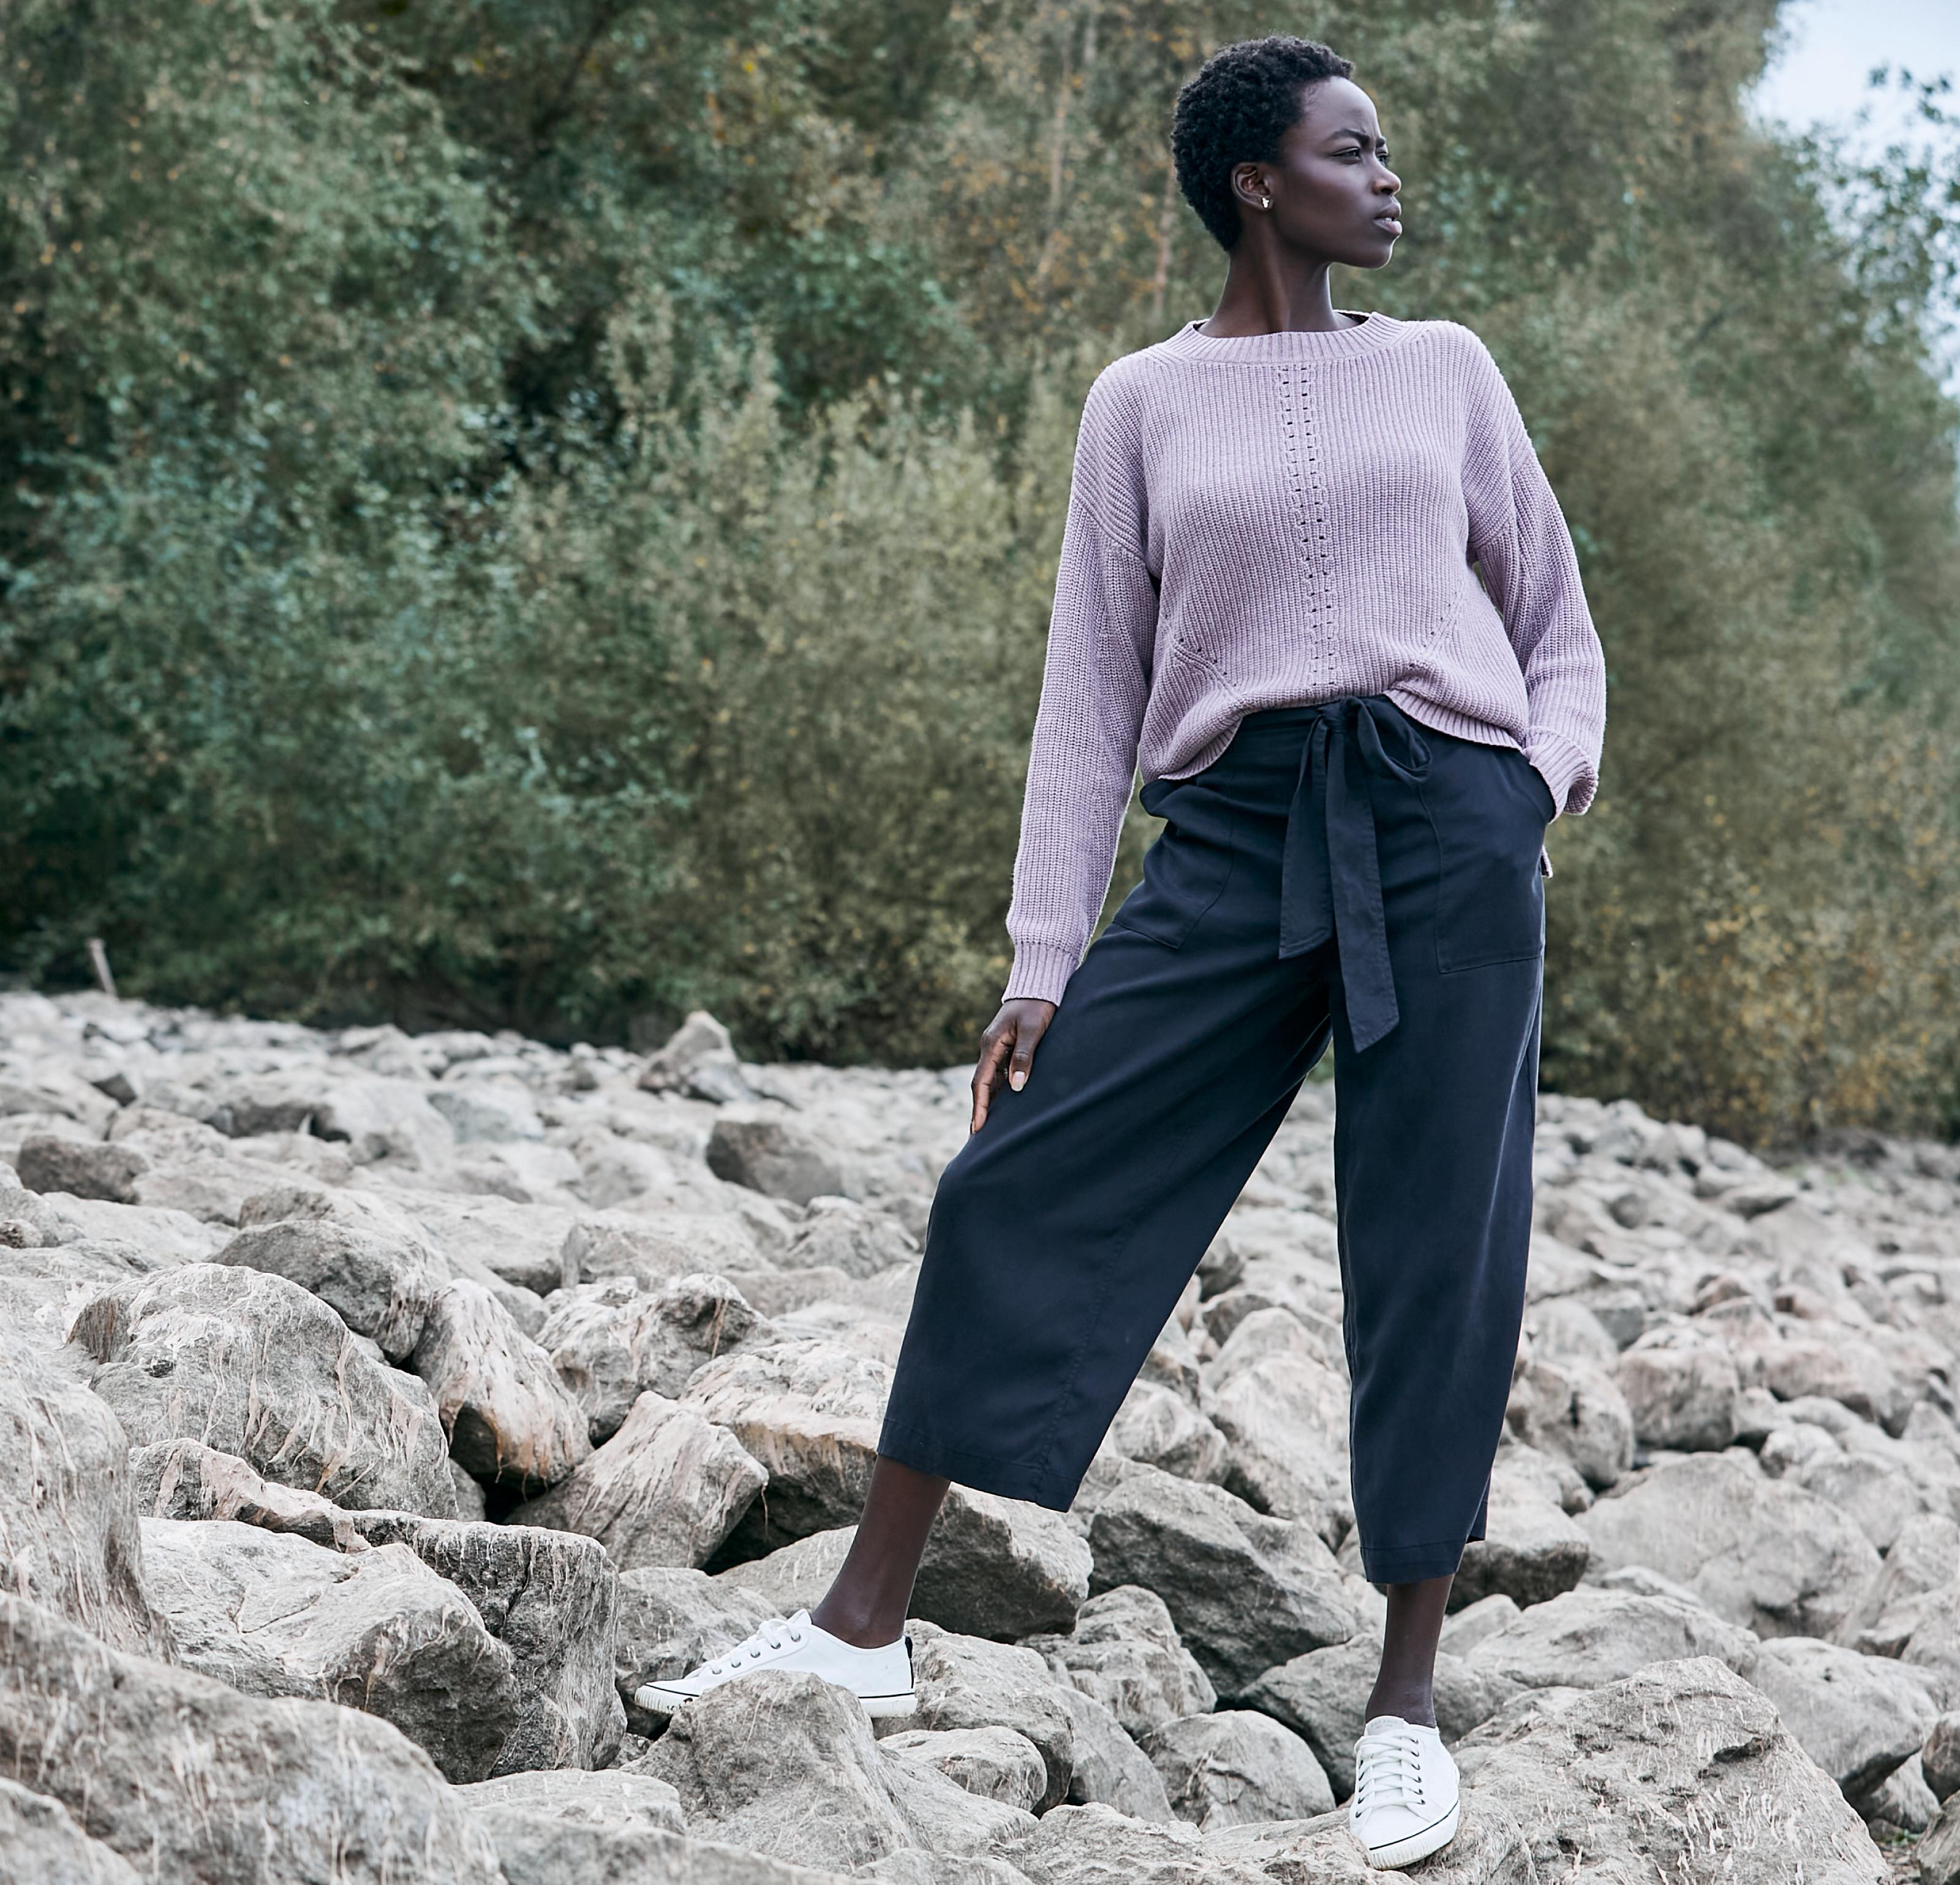 A woman standing on a rocky shoreline wearing a lilac jumper & navy cropped leg trousers.